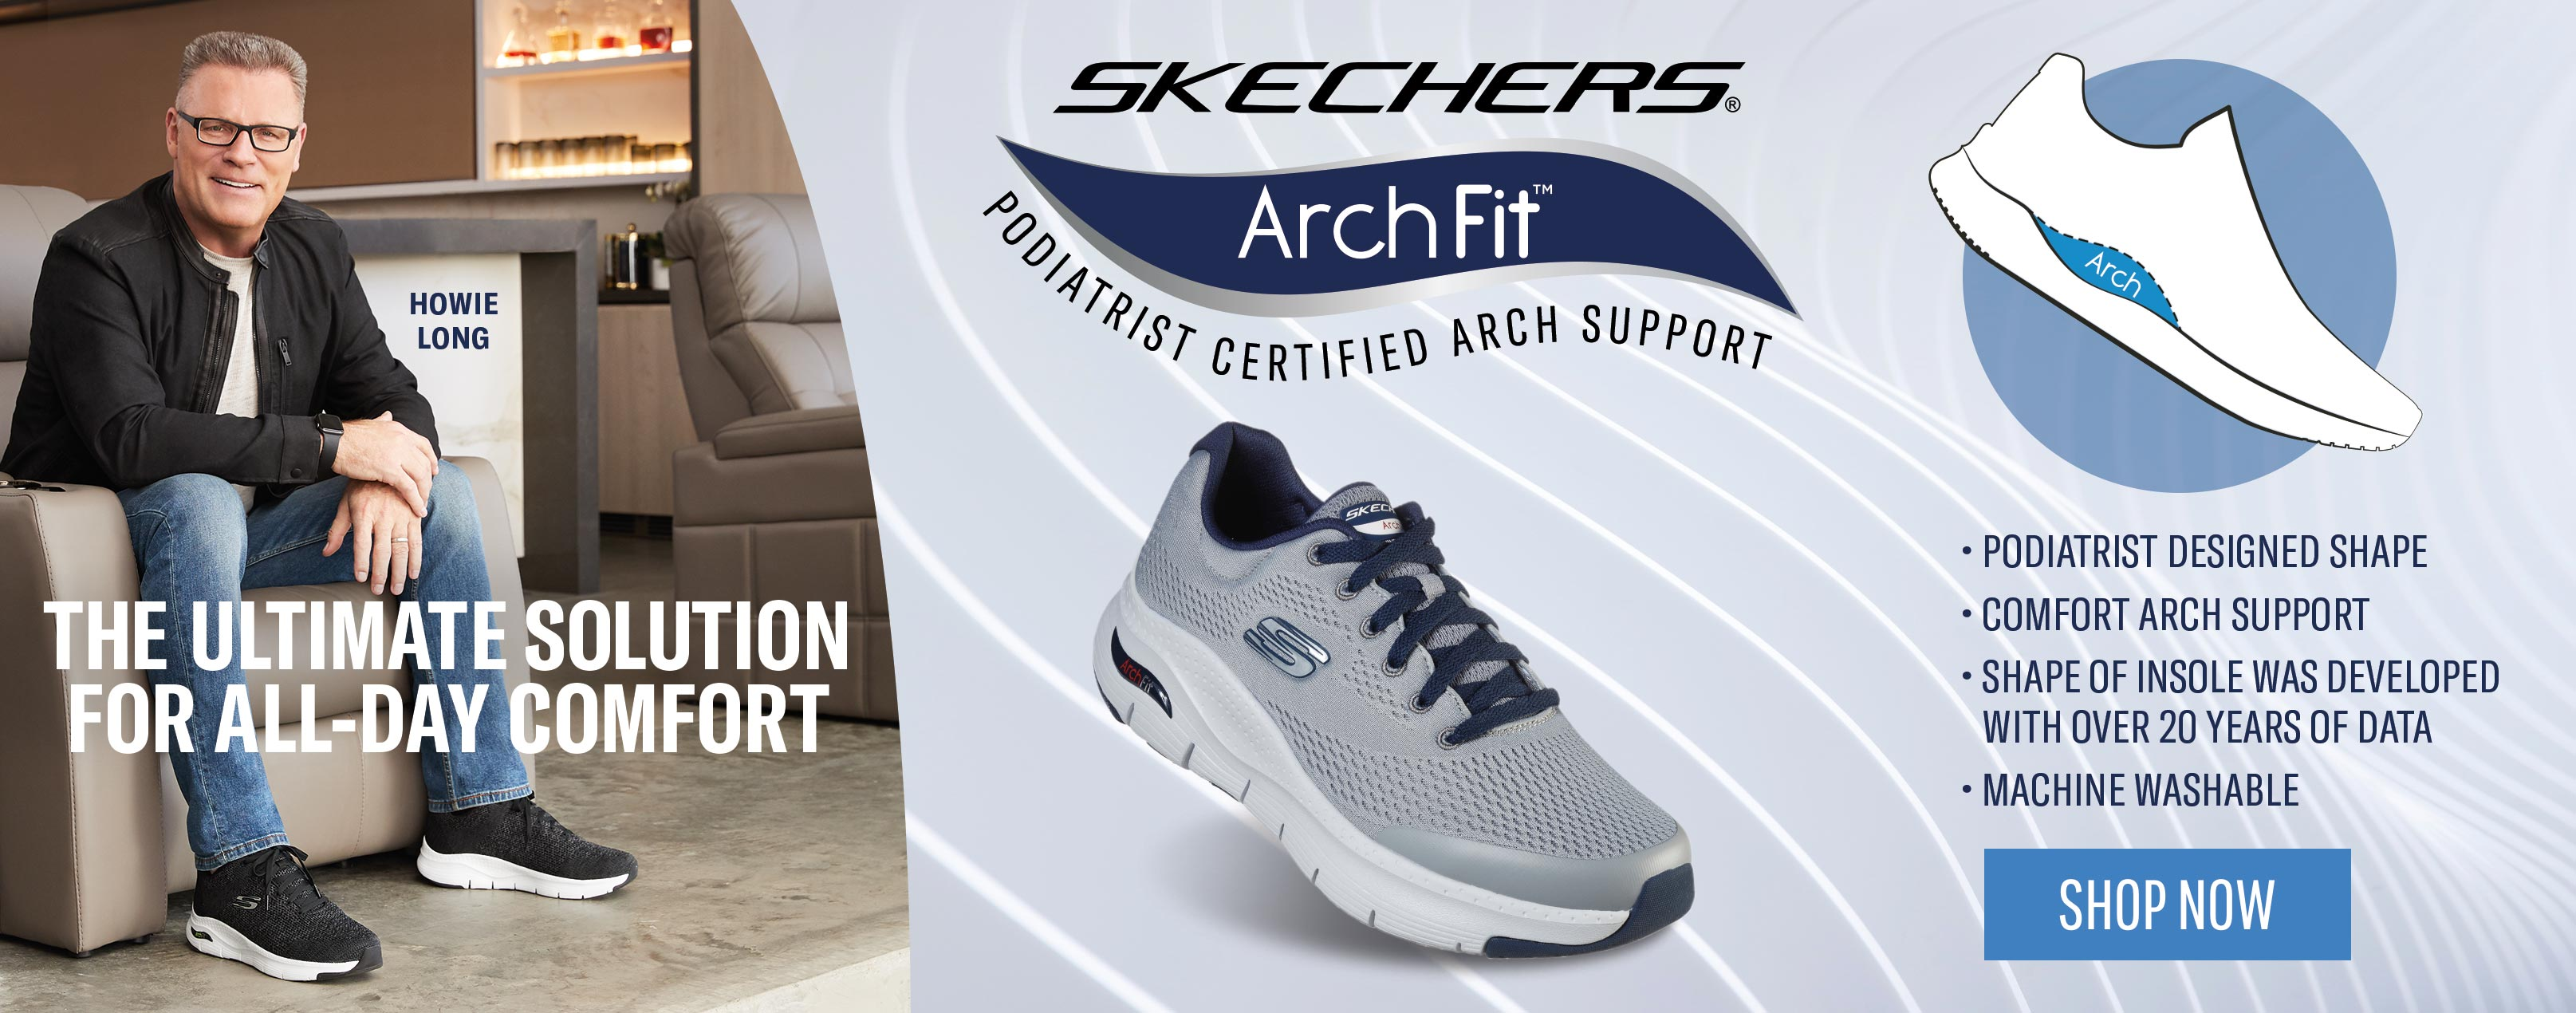 where to purchase skechers